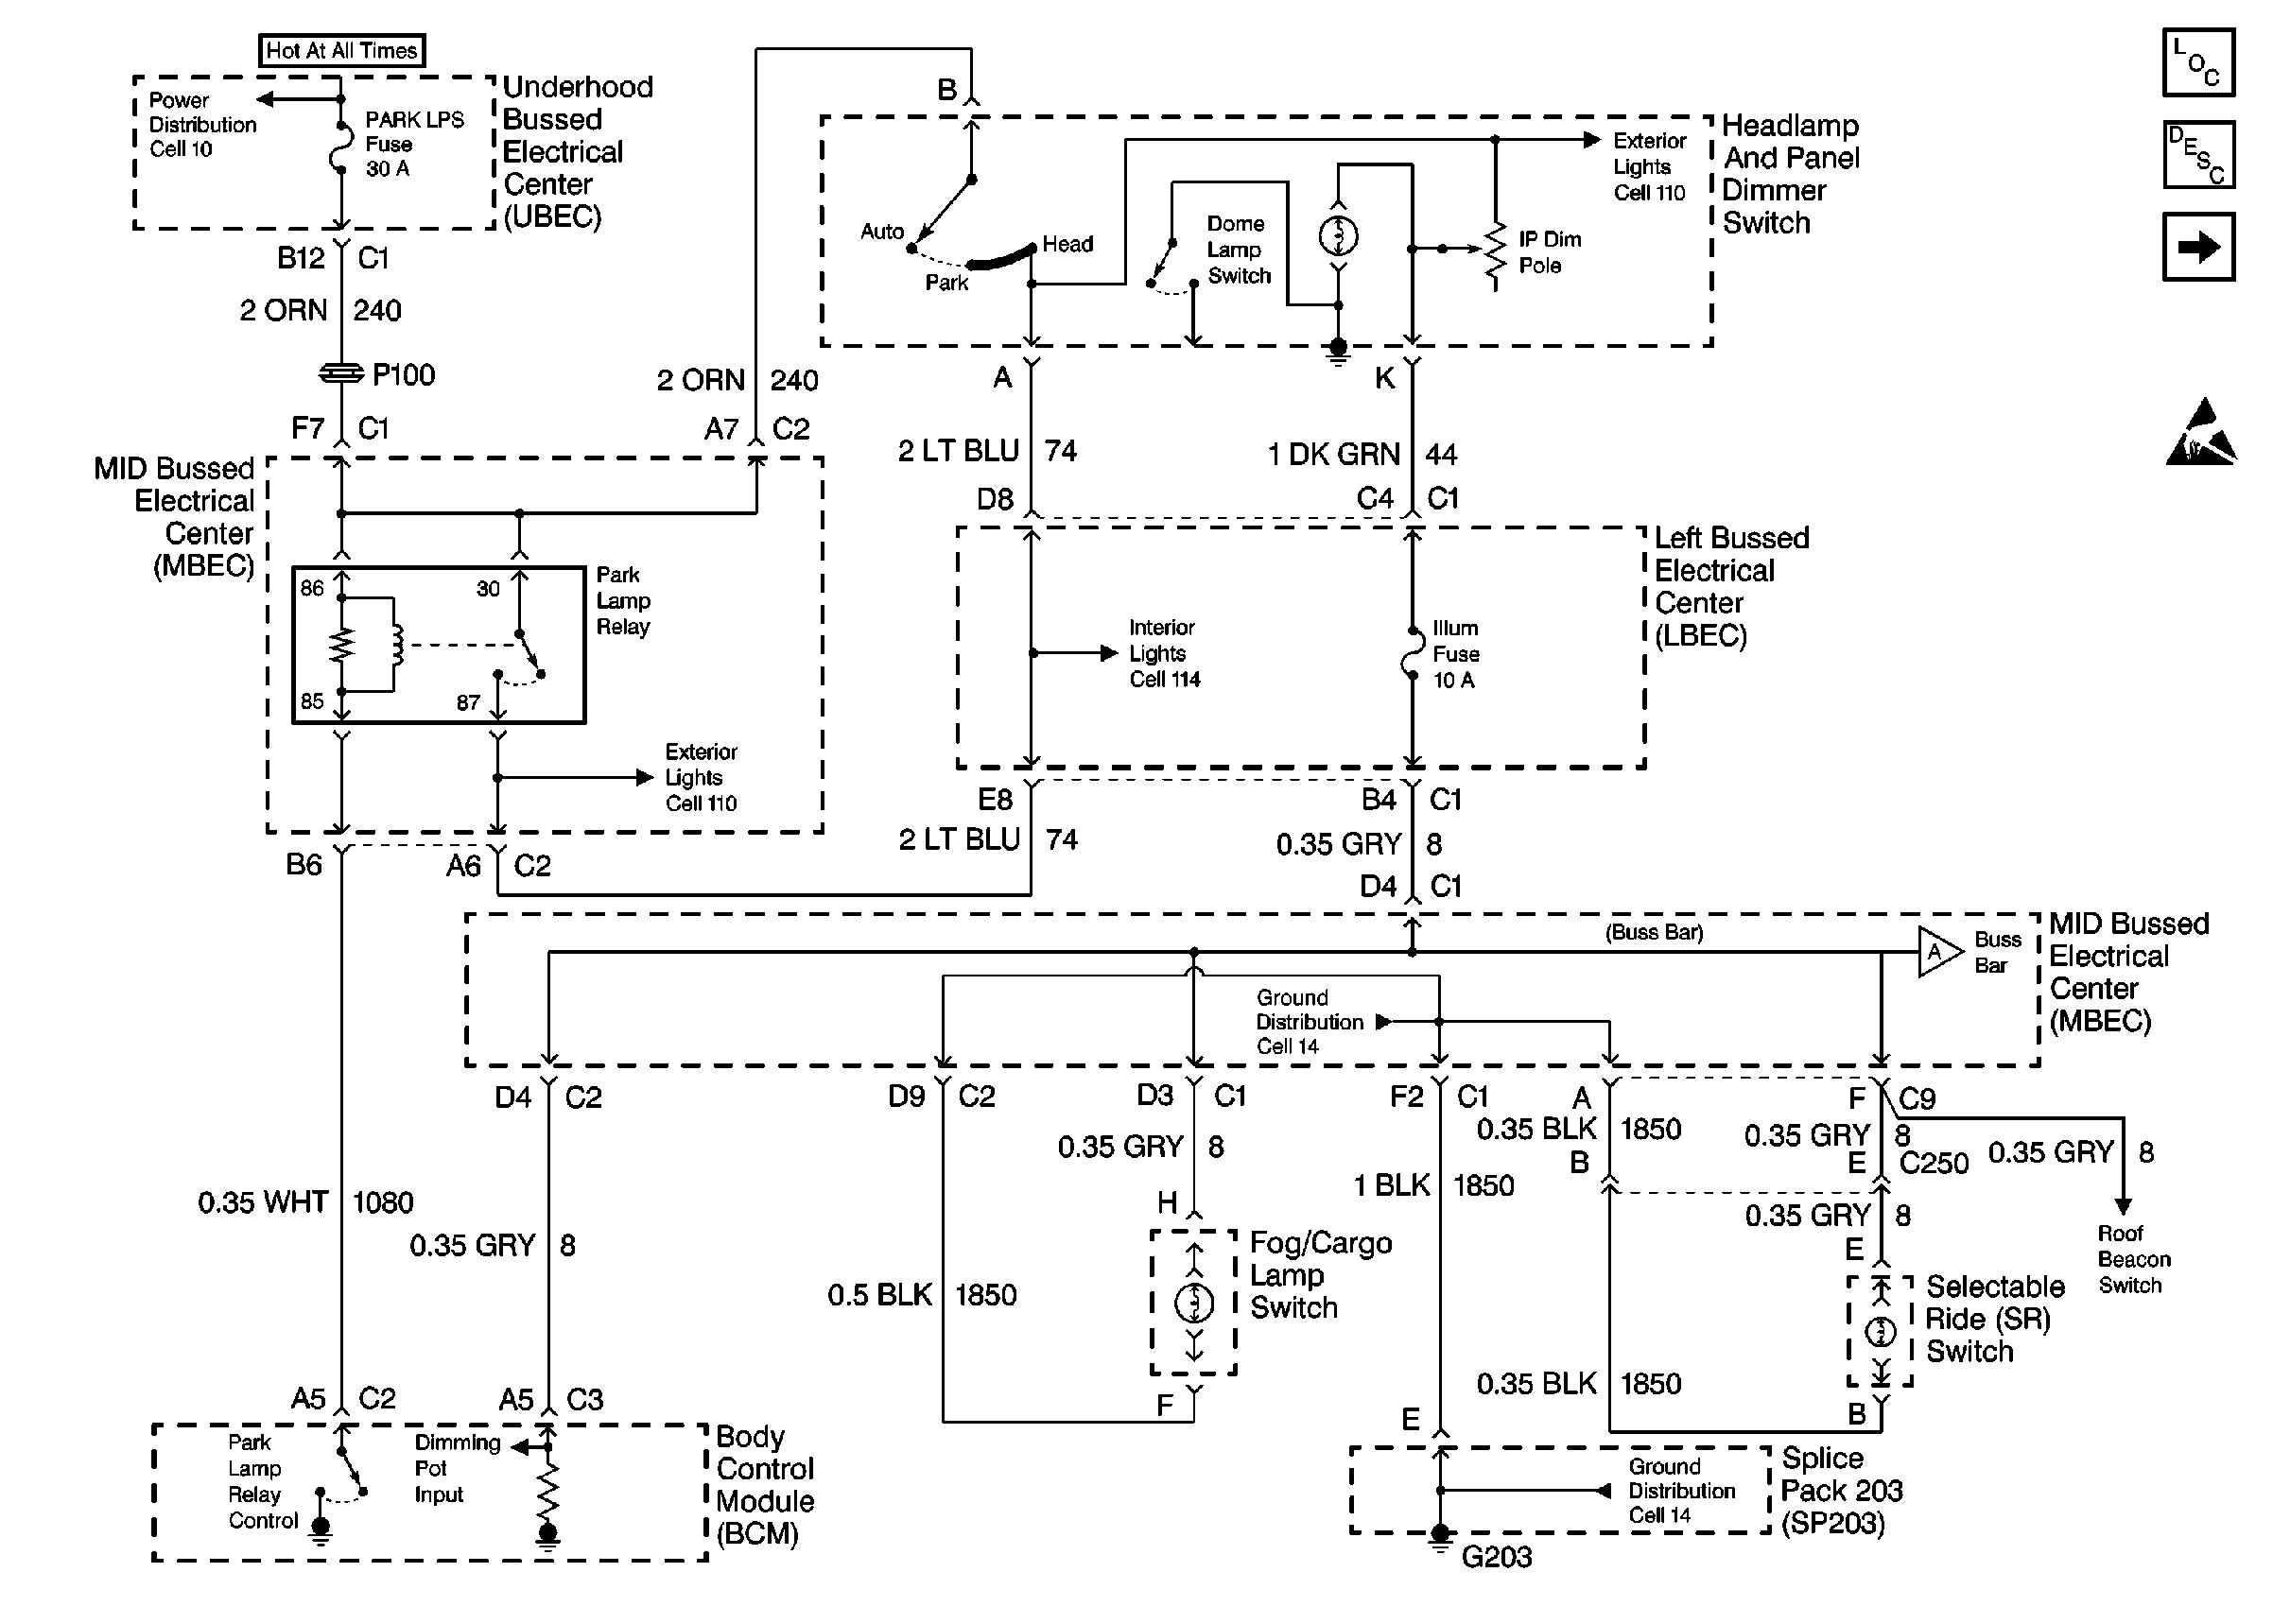 Wiring Diagram For 2003 Suburban Dash - Wiring Diagram ... on